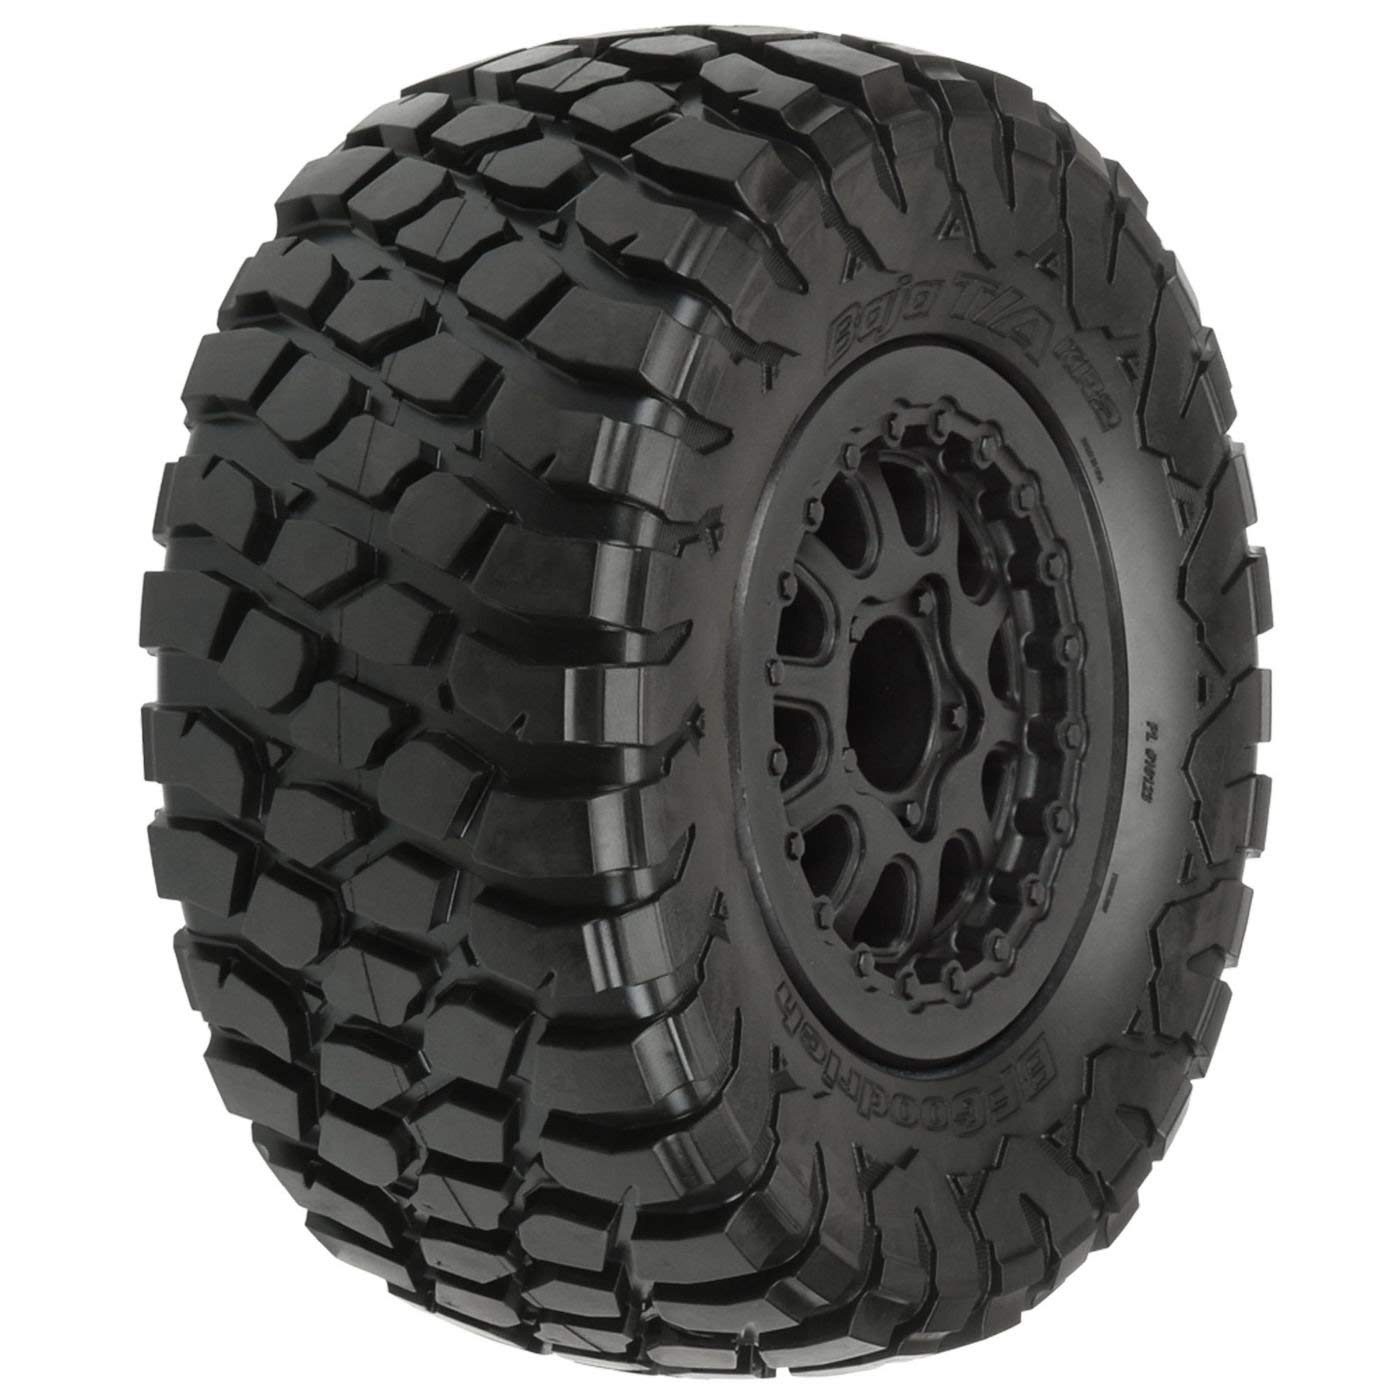 1012313 BF Goodrich Baja T/A Kr2 M2 SC 2.2/3.0 Tires On Black Renegade Wheels for Slash/Slash 4X4, Made from Pro-Line's legendary M2 rubberWalmartpound By PROLINE,USA